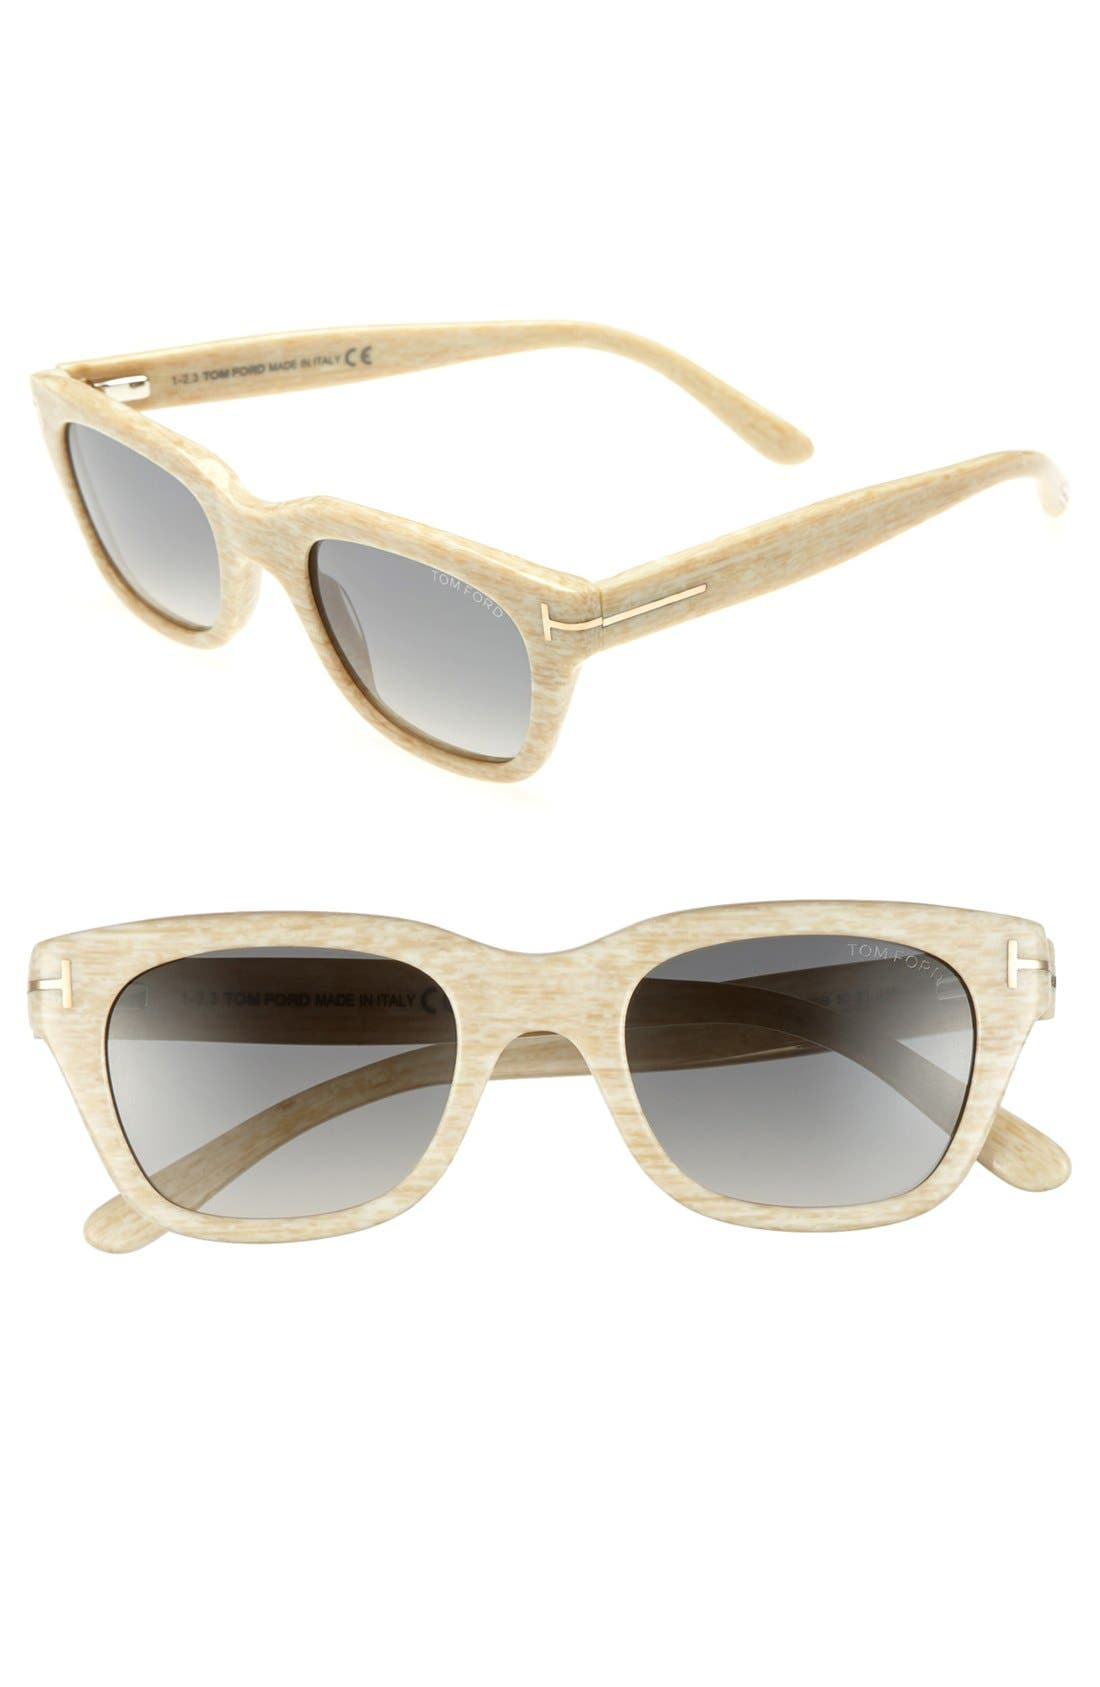 Alternate Image 1 Selected - Tom Ford 'Snowdon'50mm Sunglasses